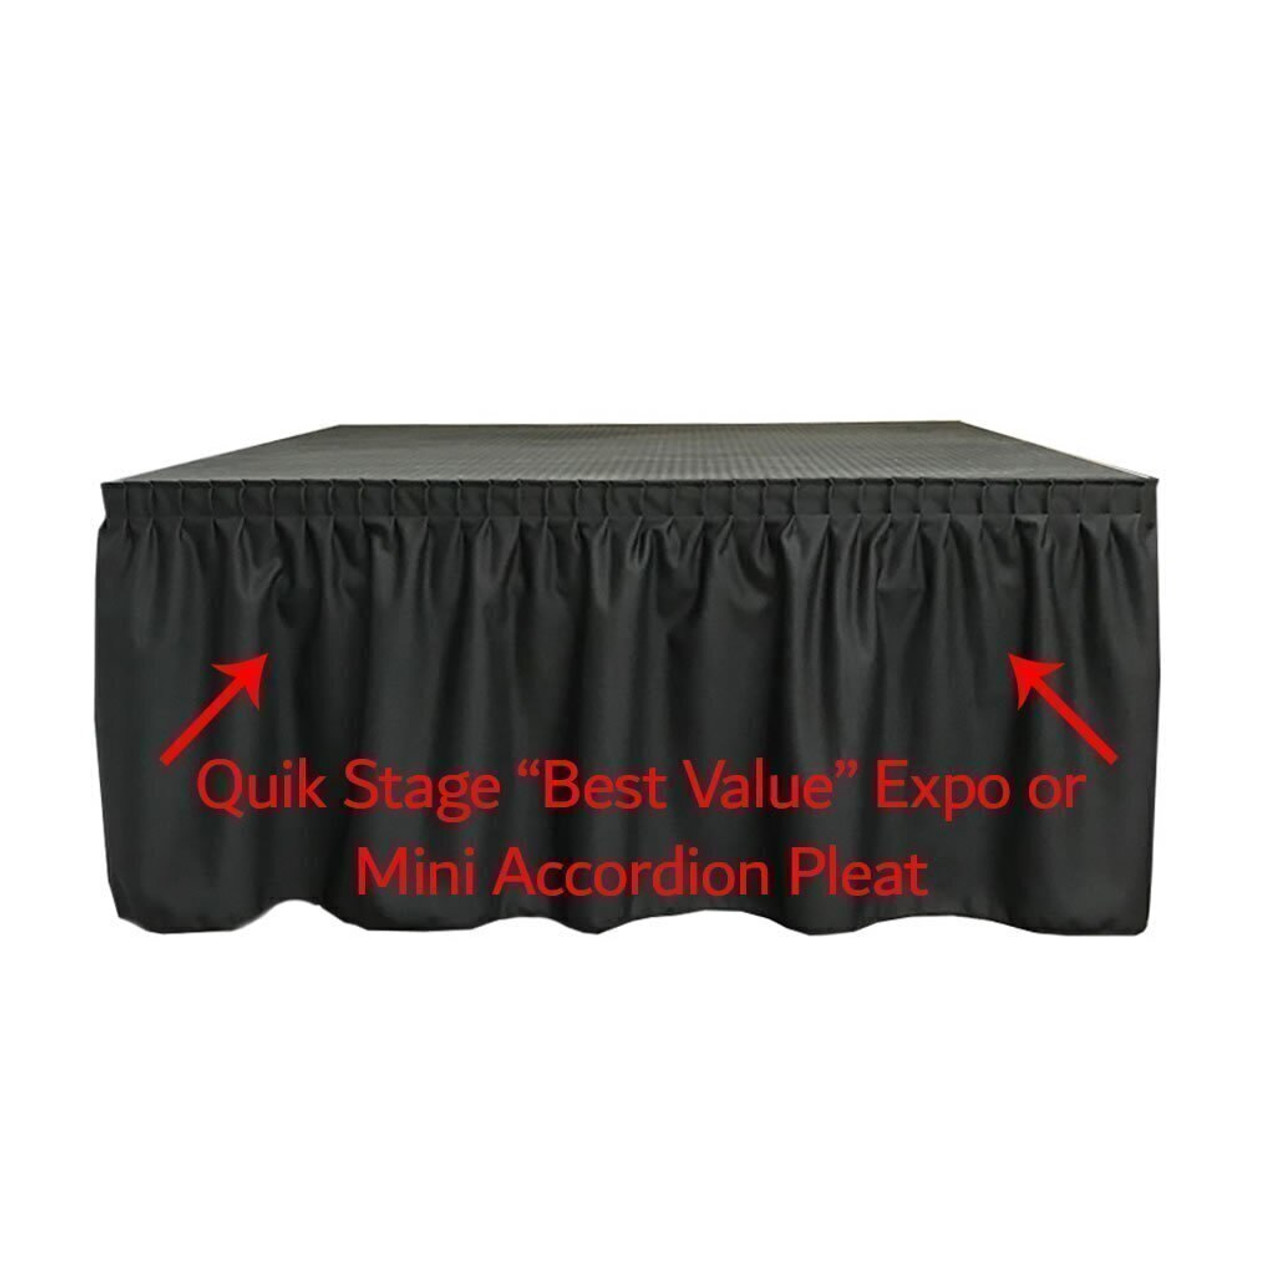 High Quality Quik Stage 8' x 20' High Portable Stage Package with Black Polyvinyl Non-Skid Surface. Additional Heights and Surfaces Available - Best Value Expo Pleat Stage Skirting